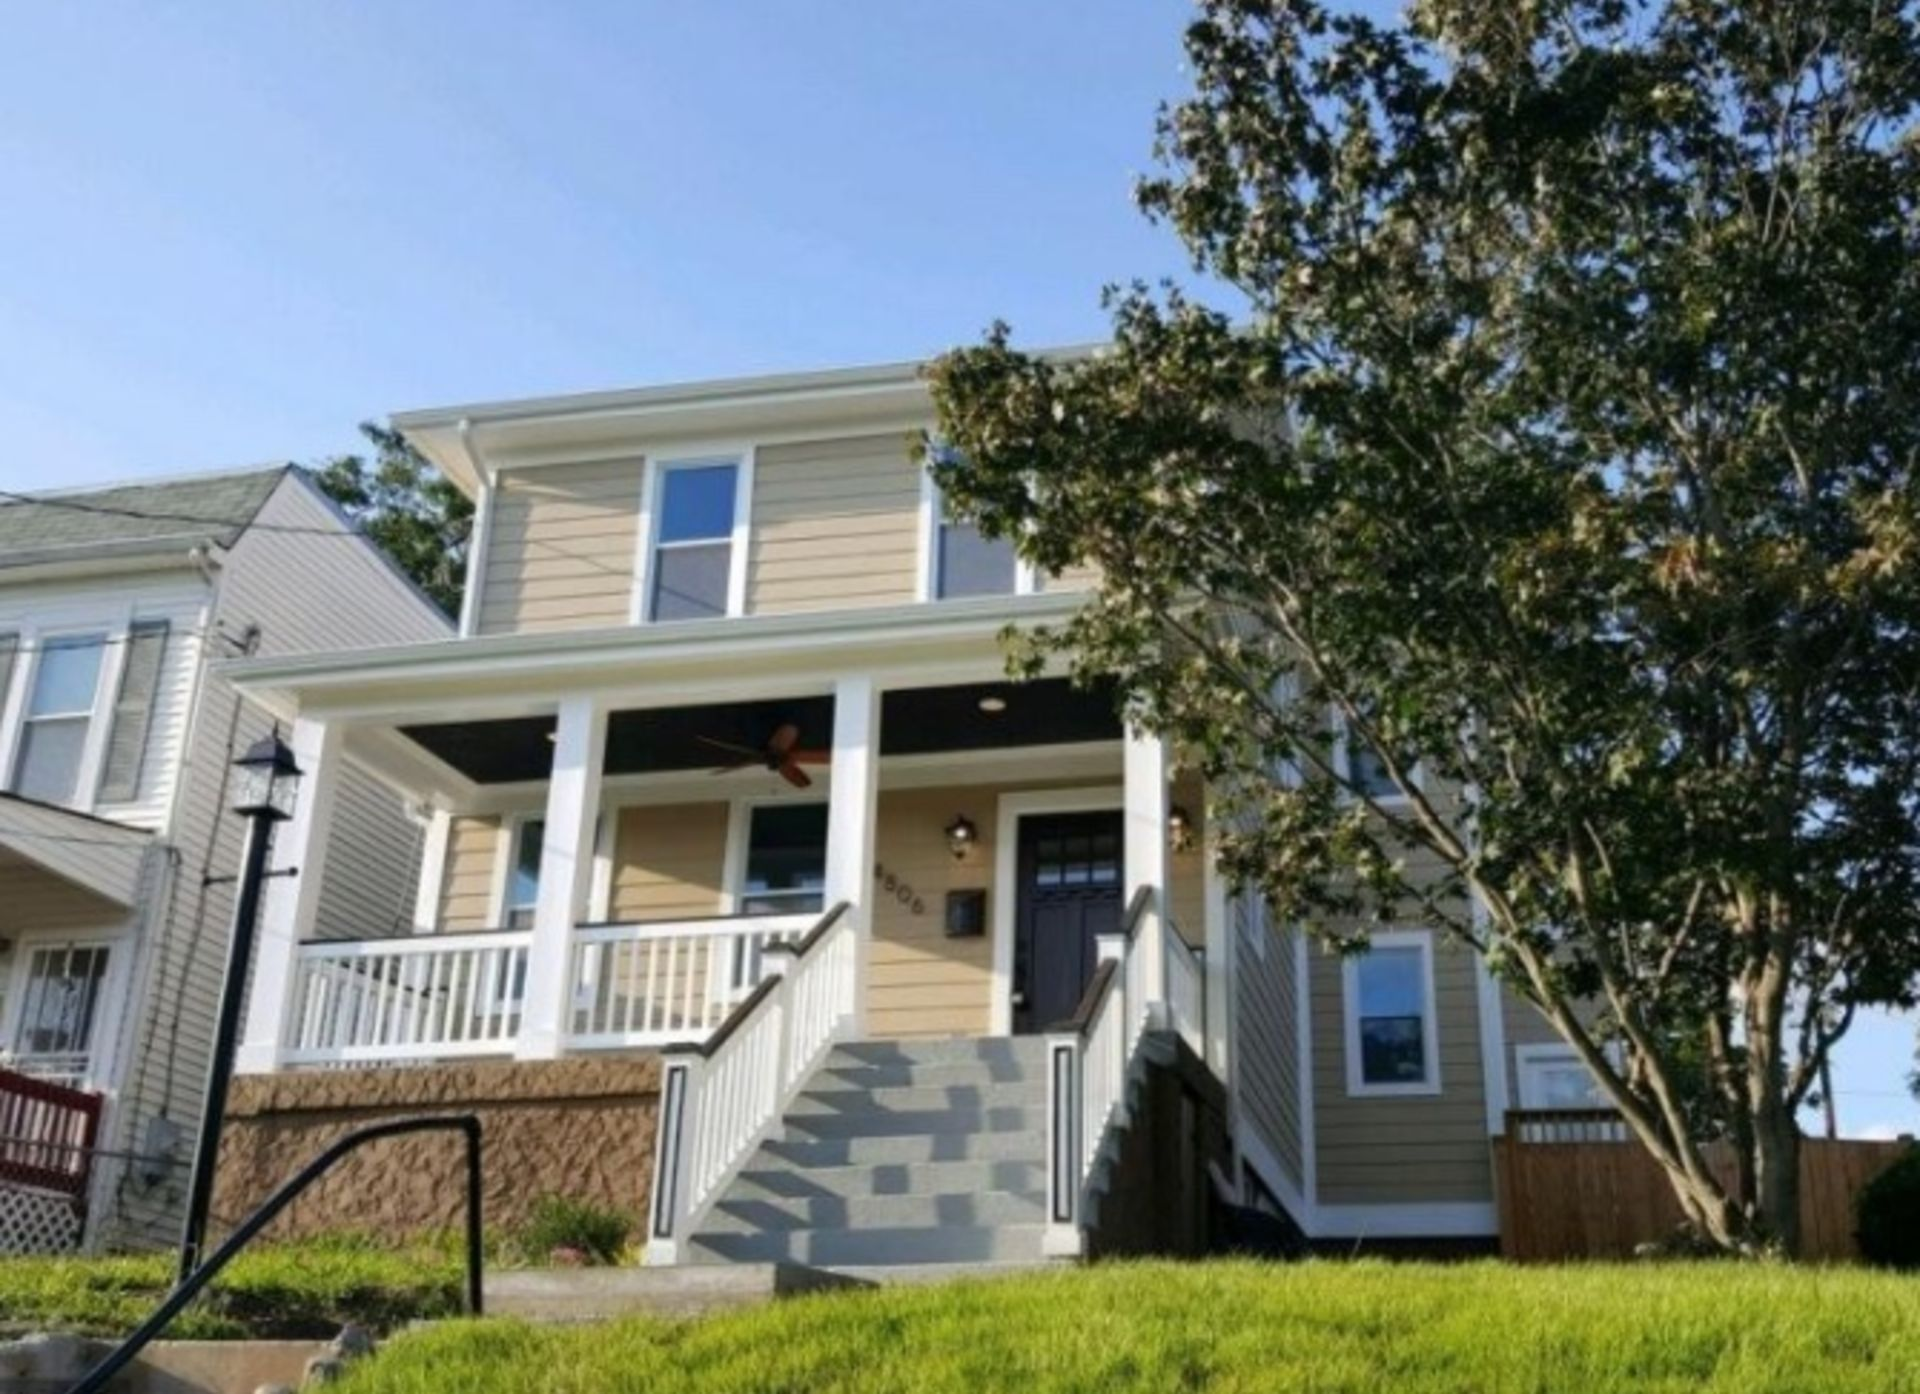 4806 Hayes St. NE – JUST SOLD!